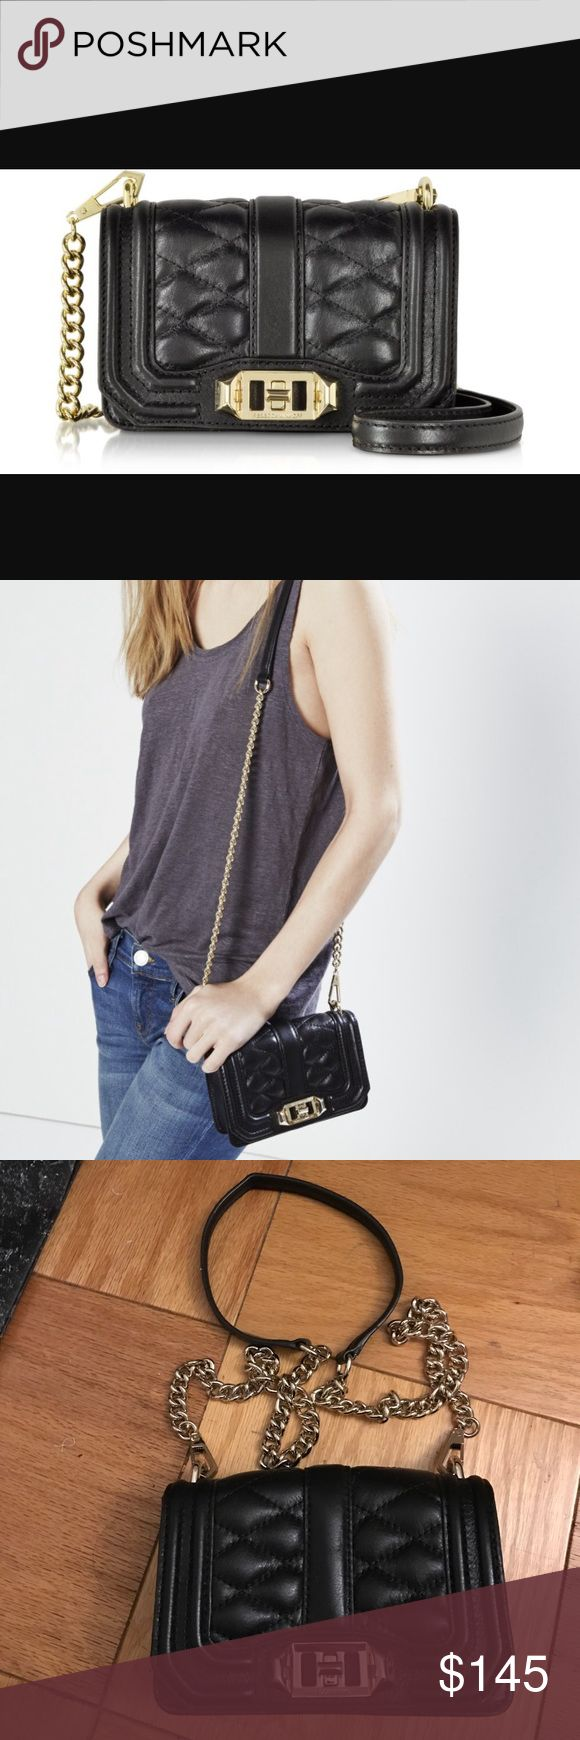 Rebecca minkoff quilted love bag Beautiful Rebecca Minkoff Black Quilted love bag. Only worn once. Get it while you can! Price negotiable. ONE Day SALE Rebecca Minkoff Bags Crossbody Bags